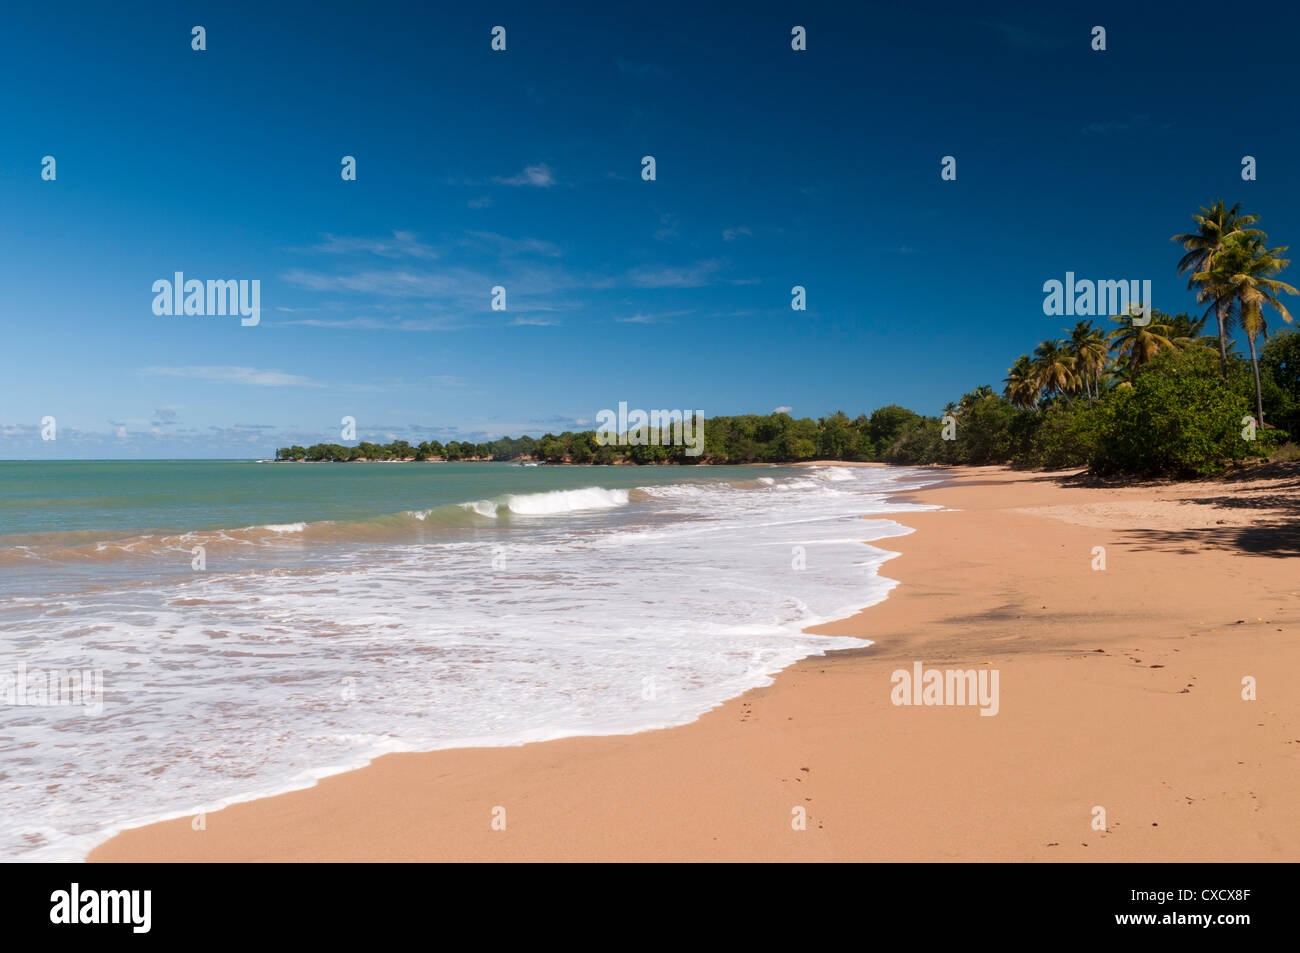 Cluny Beach, Deshaies, Basse-Terre, Guadeloupe, French Caribbean, France, West Indies, Central America Stock Photo